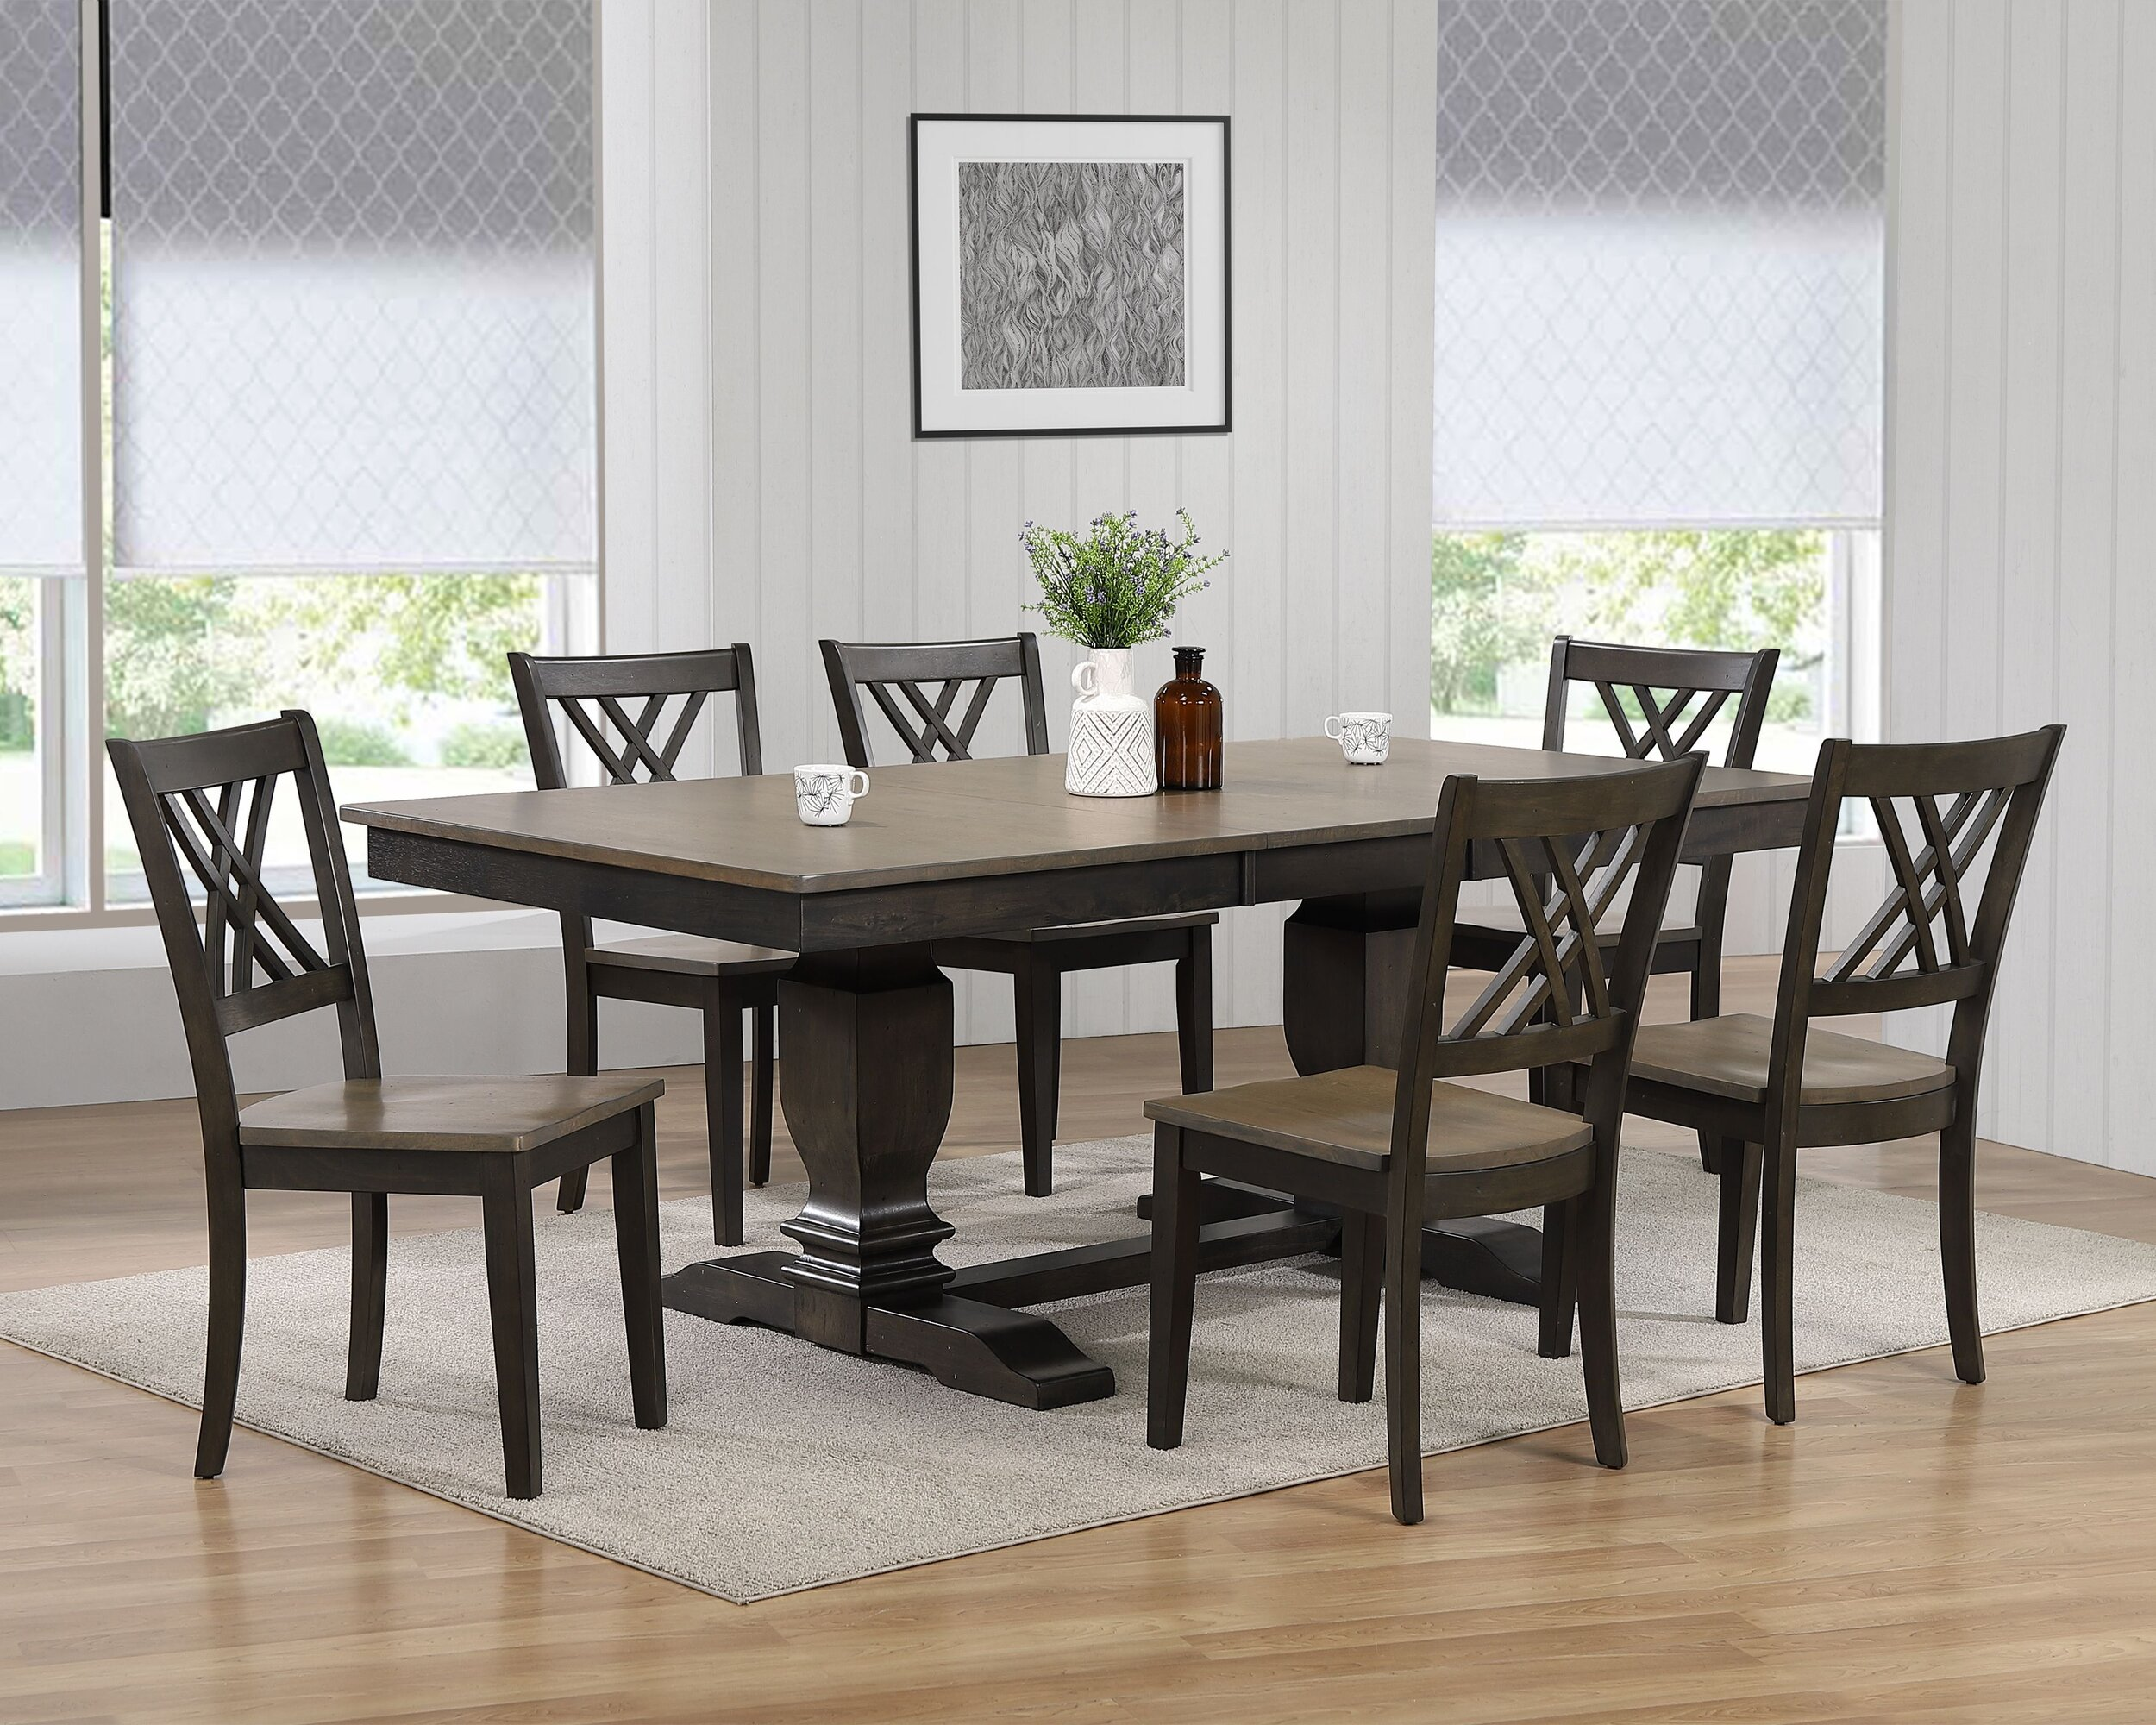 """42""""X64""""X82"""" DOUBLE PEDESTAL TRANSITIONAL ANTIQUED GREY STONE BLACK STONE DOUBLE X-BACK 7-PIECE DINING SET"""